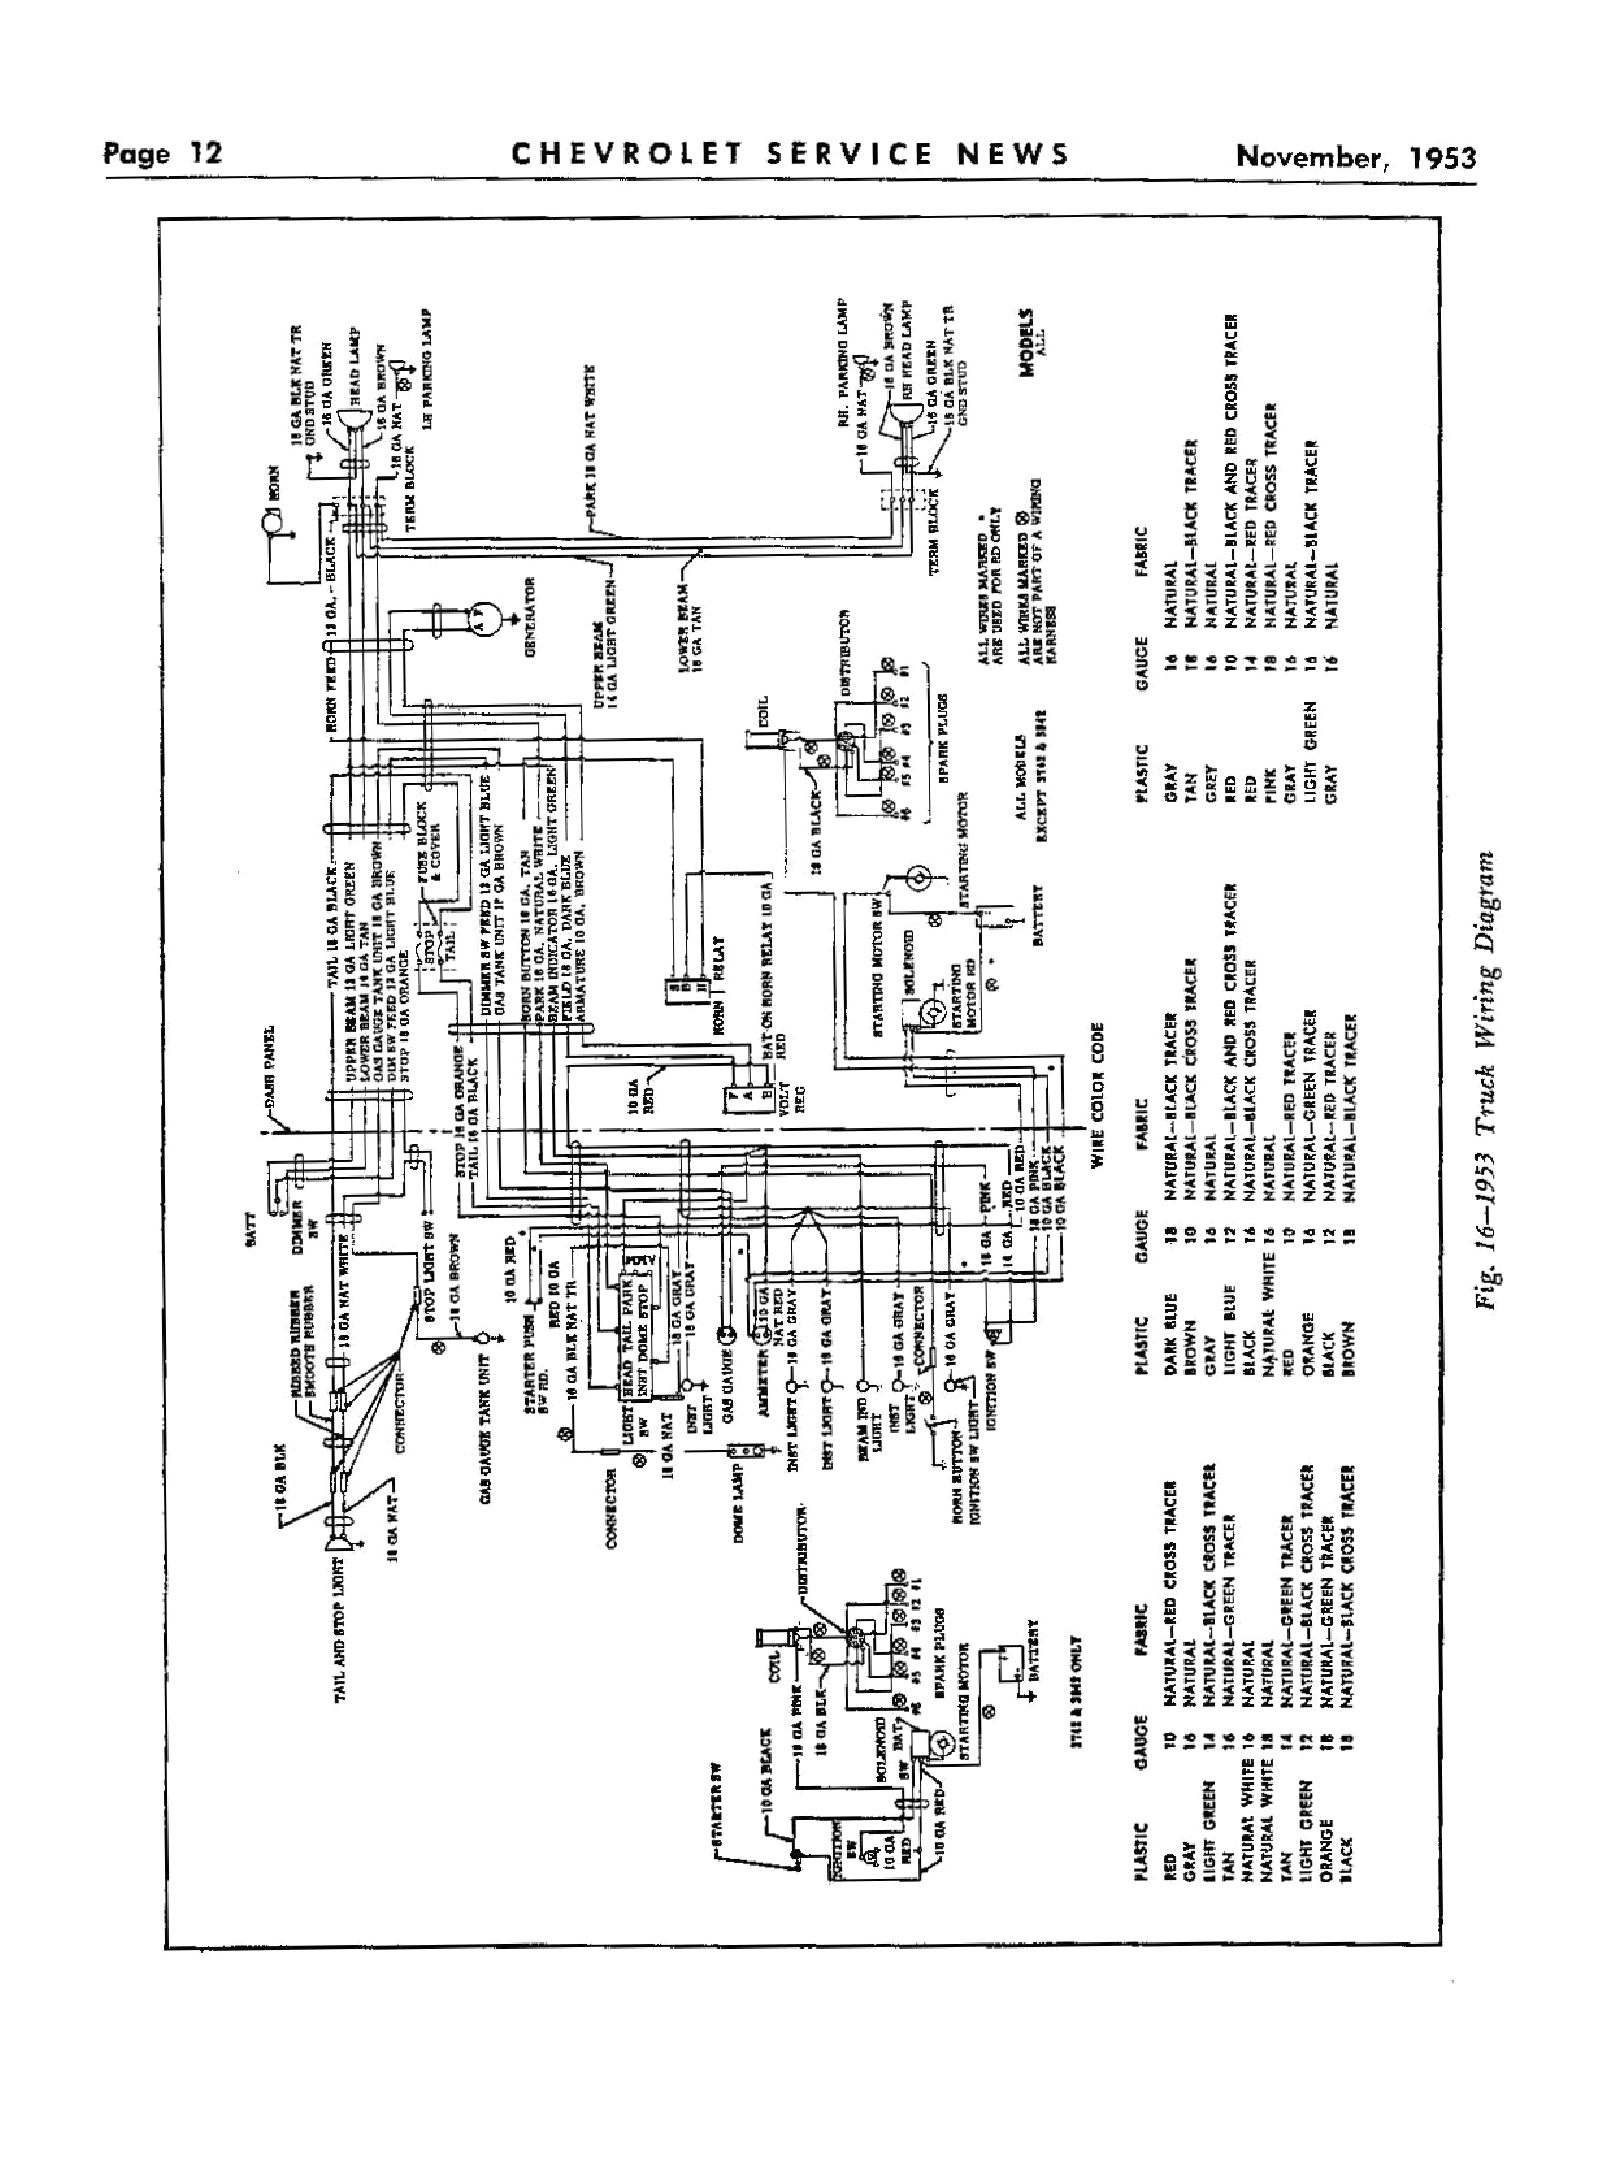 Csn on 1963 c10 chevy truck wiring diagram